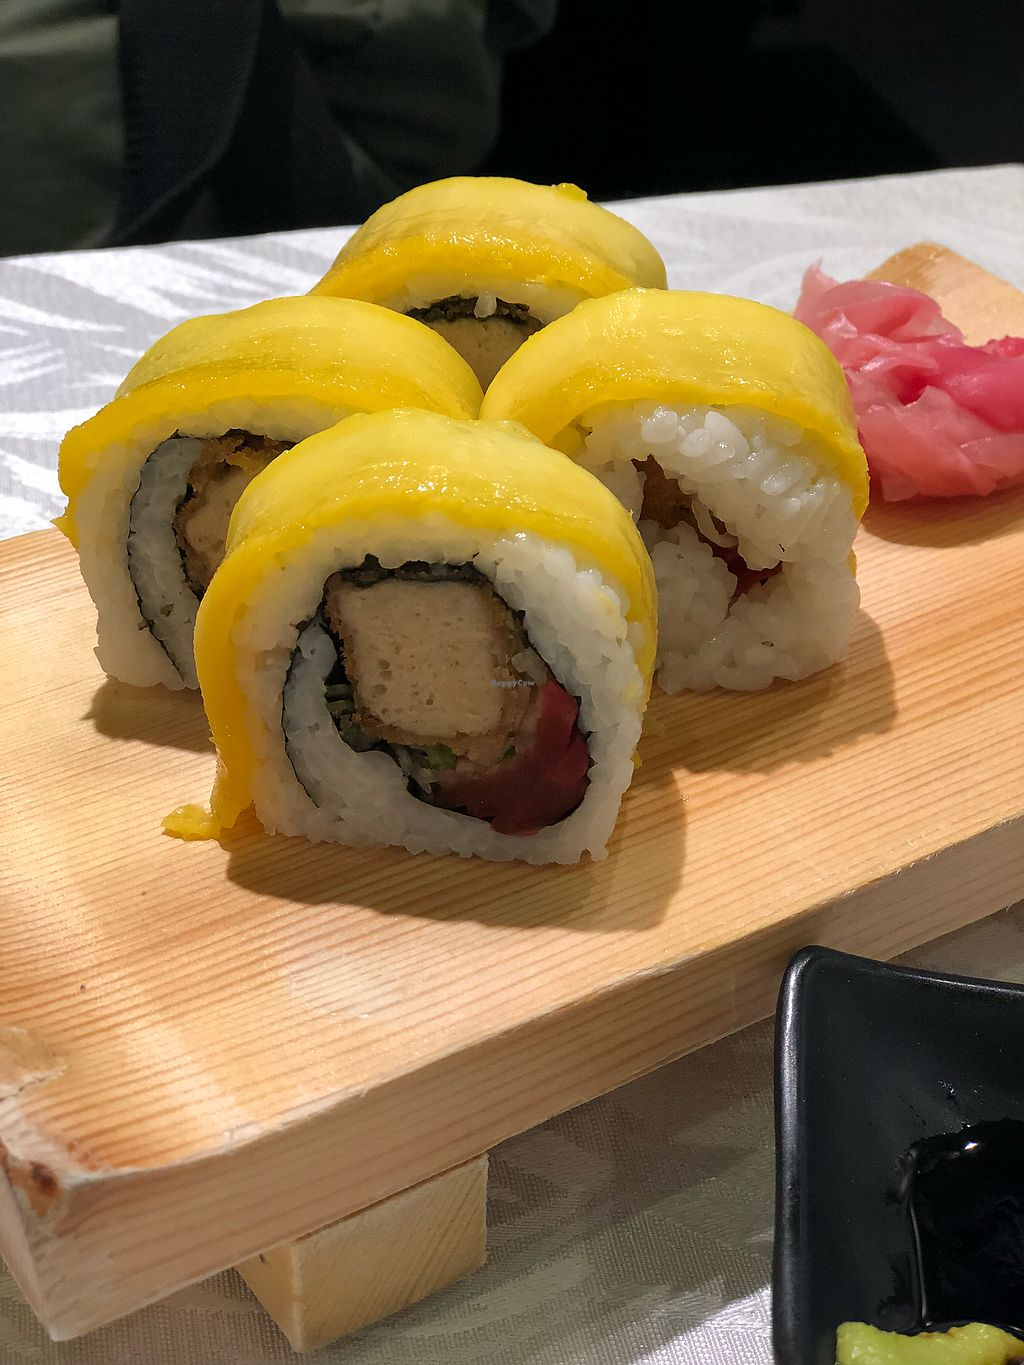 """Photo of Tong De Veggie  by <a href=""""/members/profile/Greenmilo"""">Greenmilo</a> <br/>Mango cutler roll <br/> December 18, 2017  - <a href='/contact/abuse/image/91710/336778'>Report</a>"""